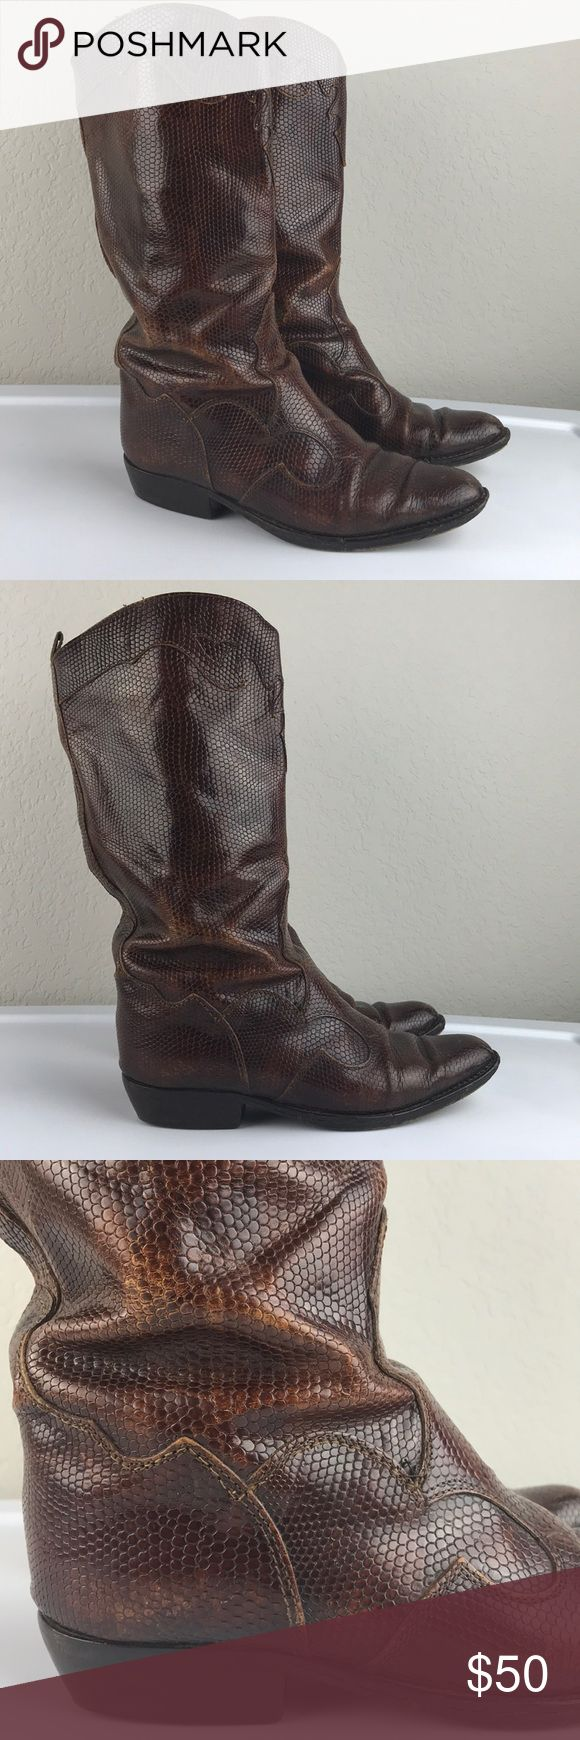 Joan & David Italian leather brown cowboy boots Joan & David gorgeous warm brown Italian leather streamlined western style cowboy boot with textured leather and swirled detail. Italian cowboy boots are amazing for when you want to look a little tough, but ready for the city rather than the ranch. Great used condition, leather soles have wear and heels have some wear. Fit like a 6/6.5 Joan & David Shoes Heeled Boots